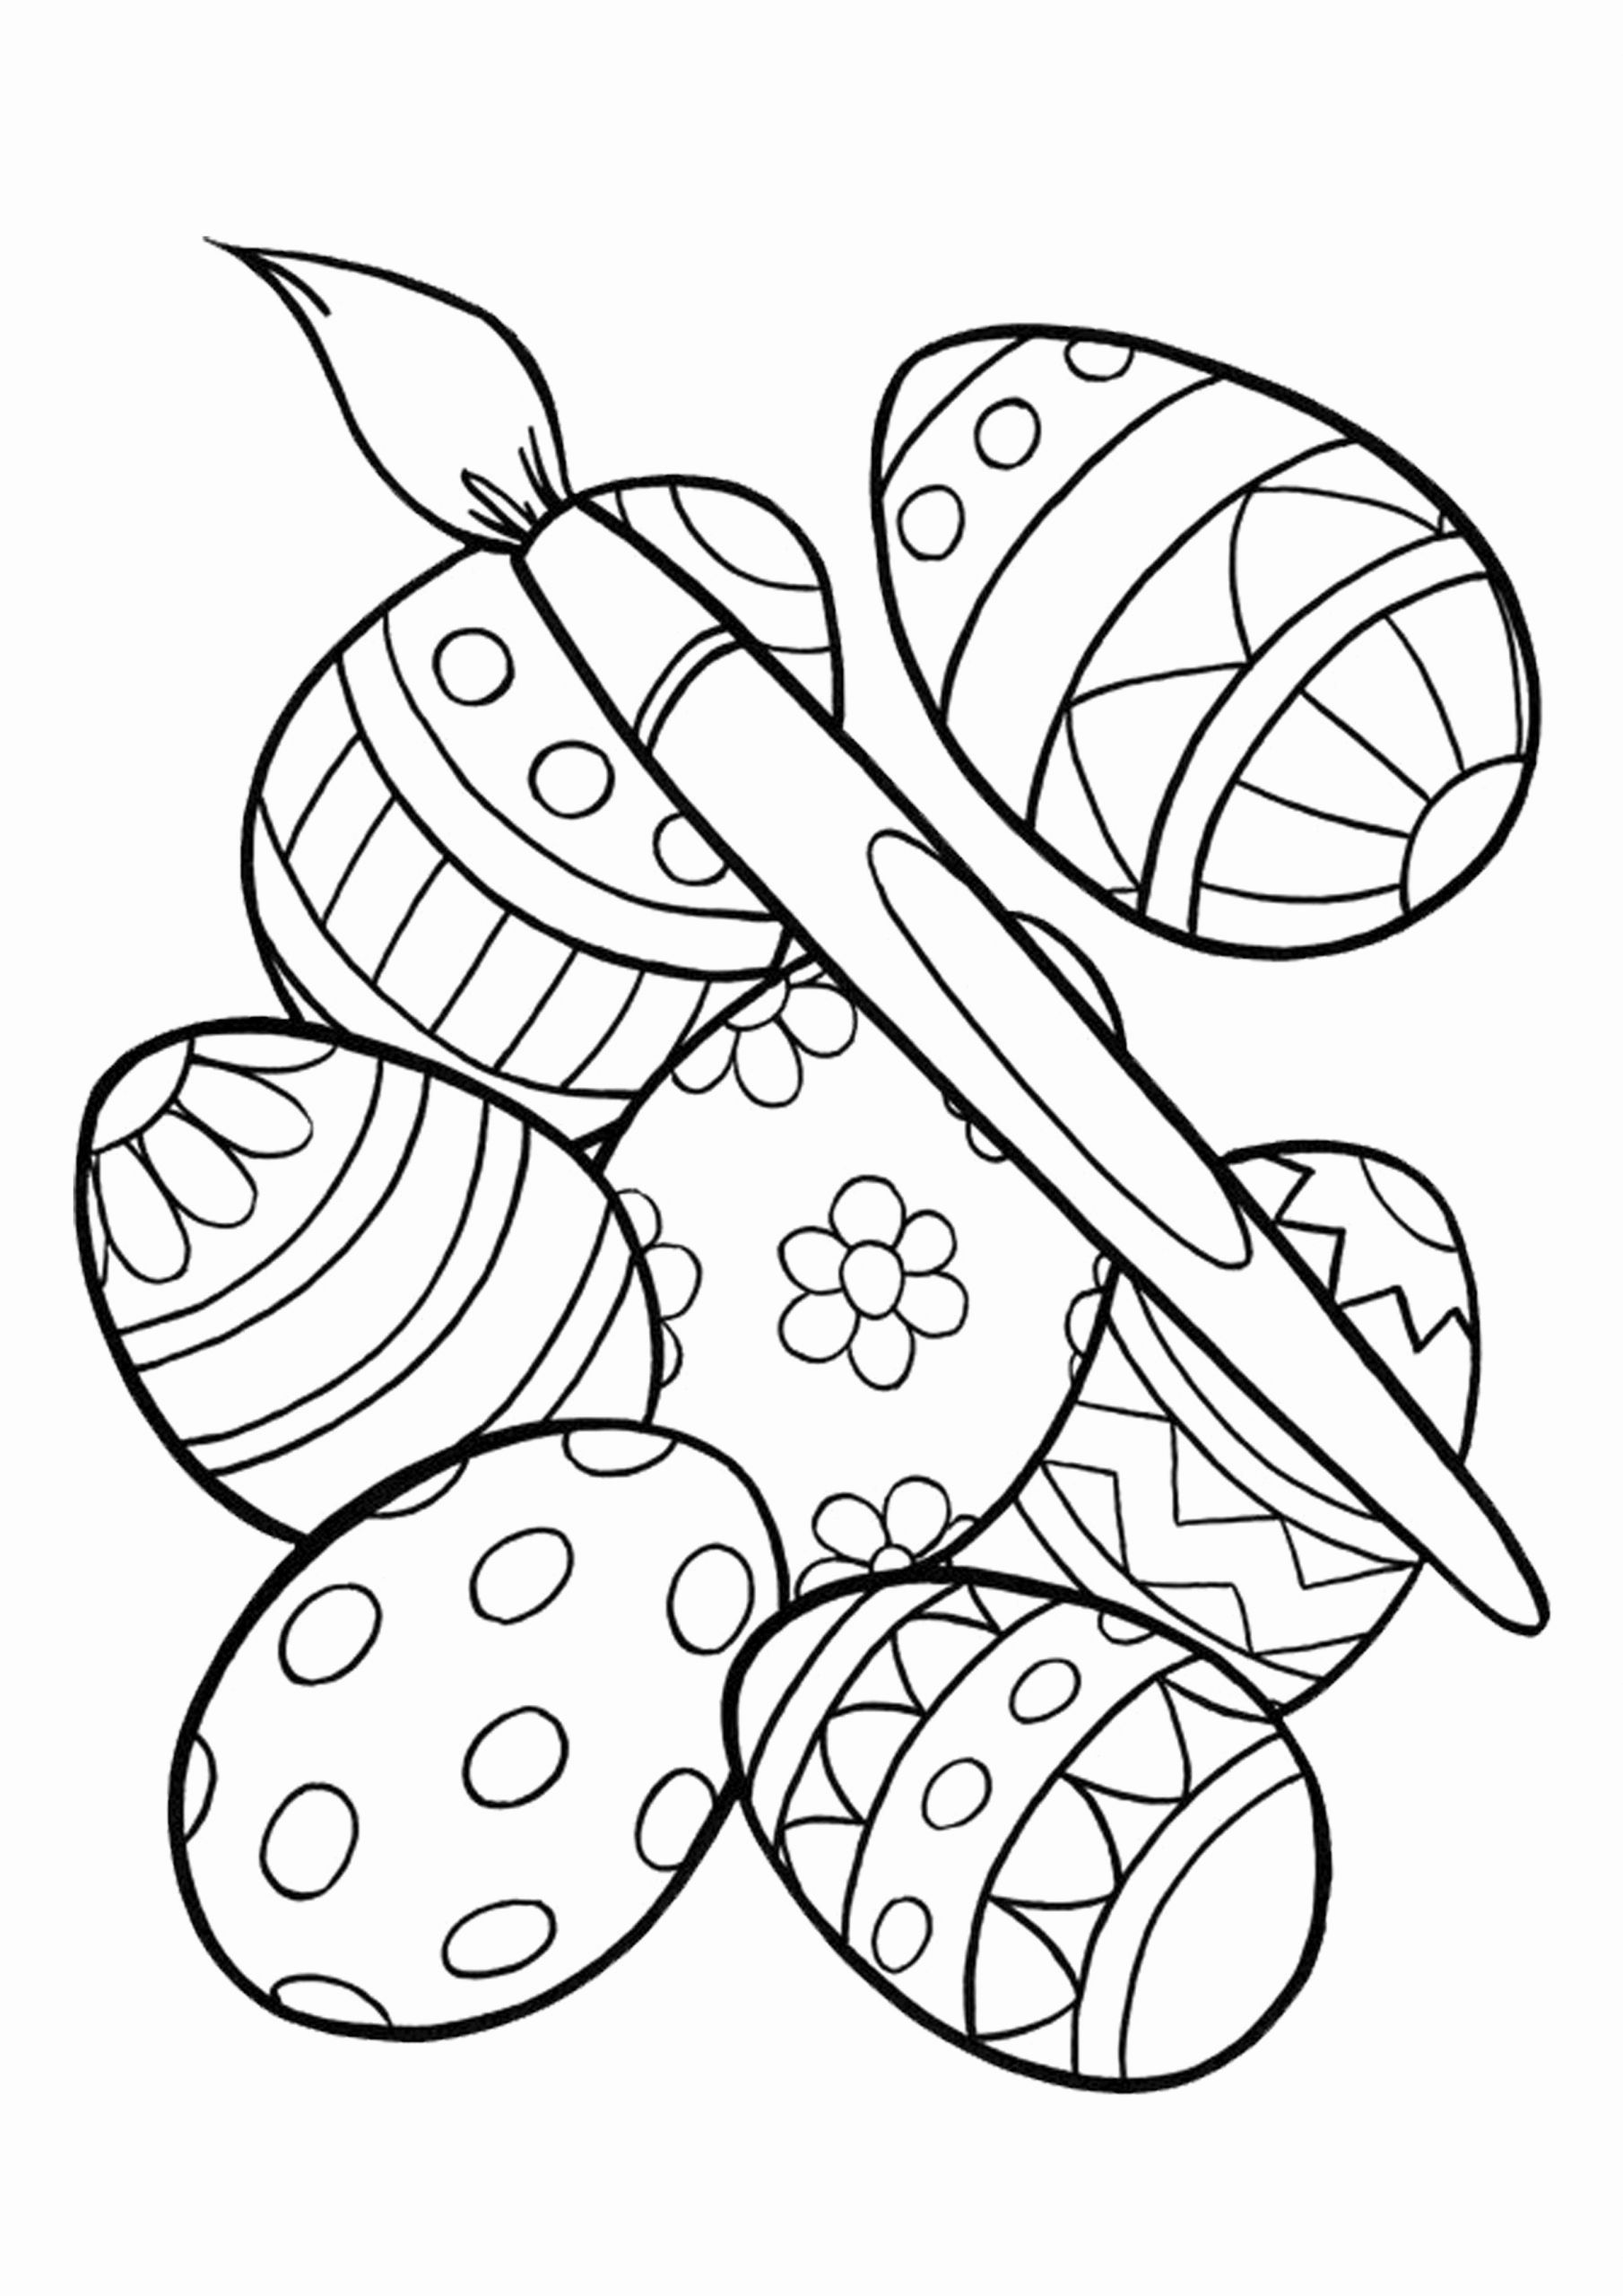 Printable Easter Eggs Coloring Pages Inspirational Easy ...